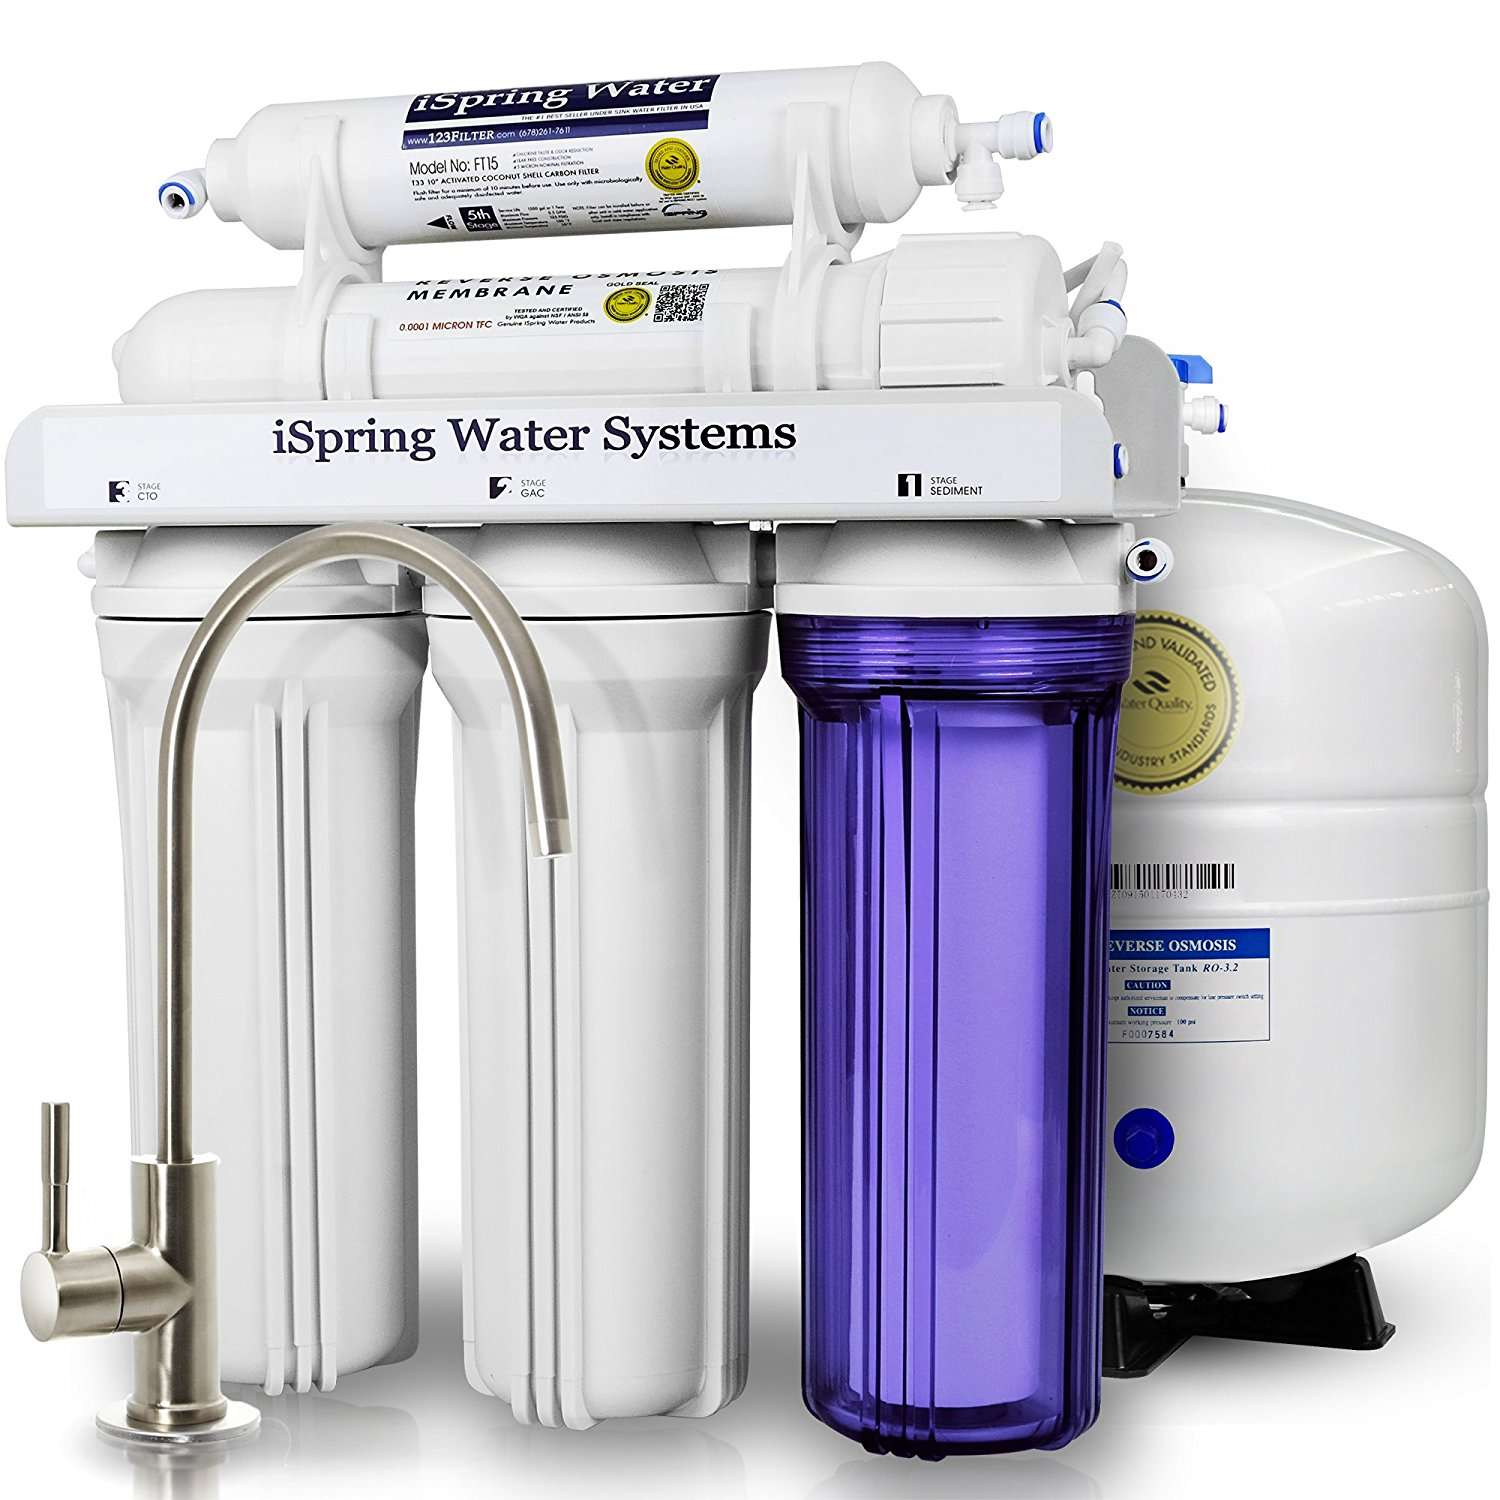 Reverse Osmosis System What The Experts Won t Tell You